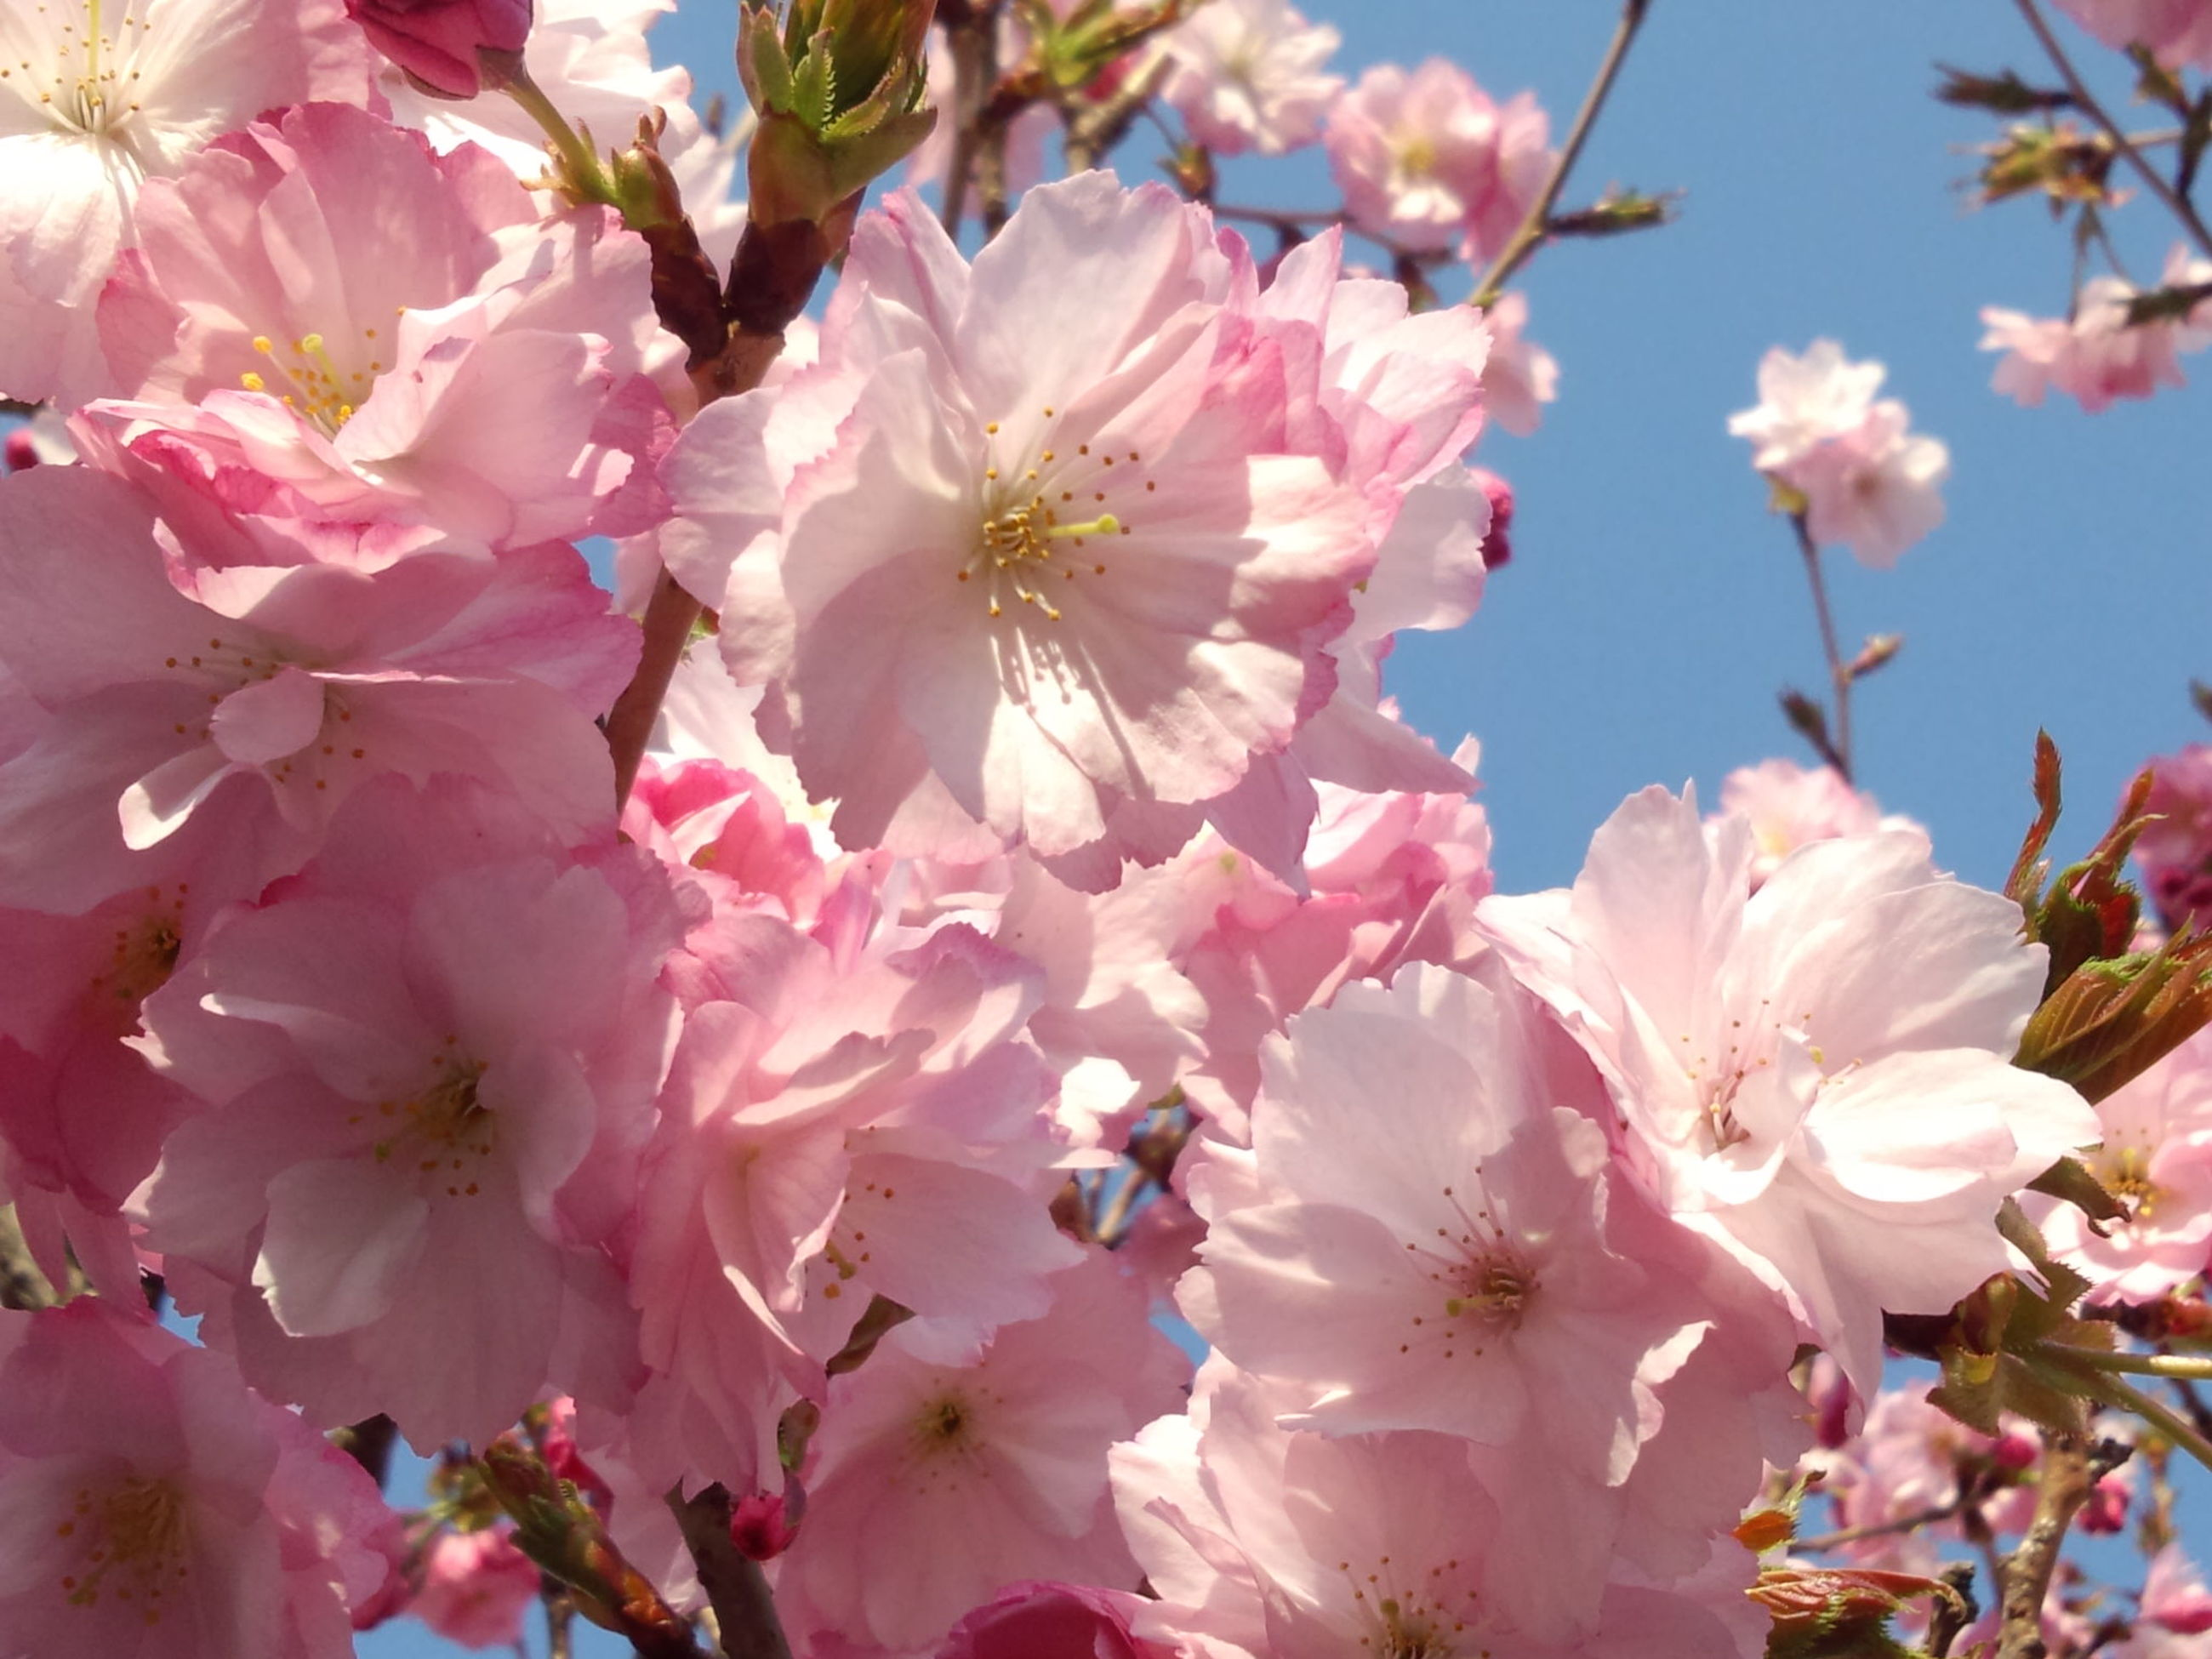 flower, freshness, pink color, growth, fragility, beauty in nature, branch, tree, low angle view, nature, cherry blossom, petal, blossom, close-up, cherry tree, pink, blooming, in bloom, springtime, focus on foreground